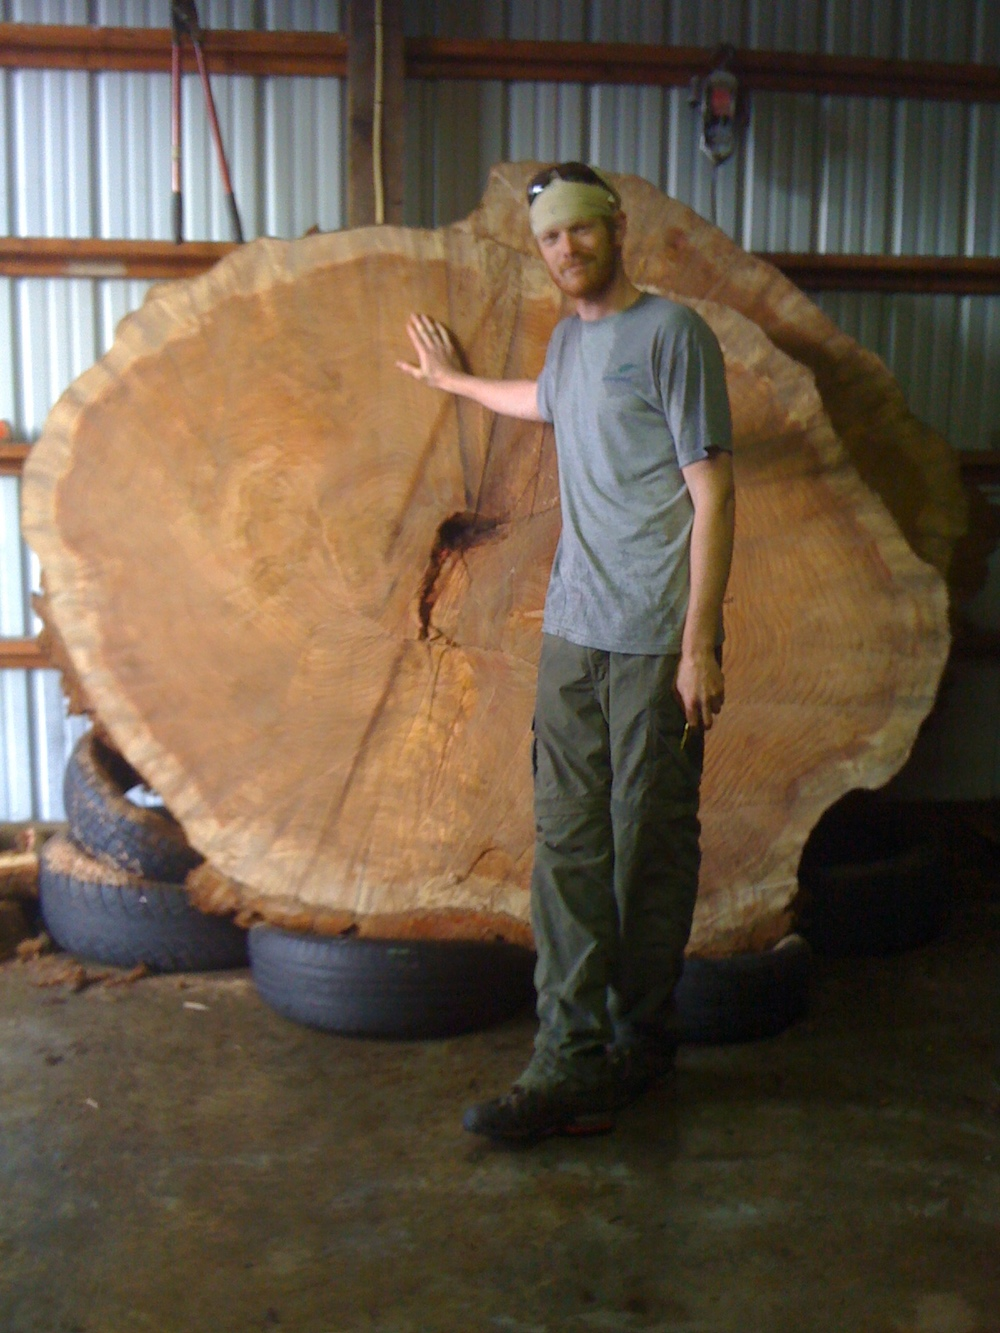 Huge Sequoia tree. This piece was cut from 20 feet up on the trunk. Great Job guys on a tough project!